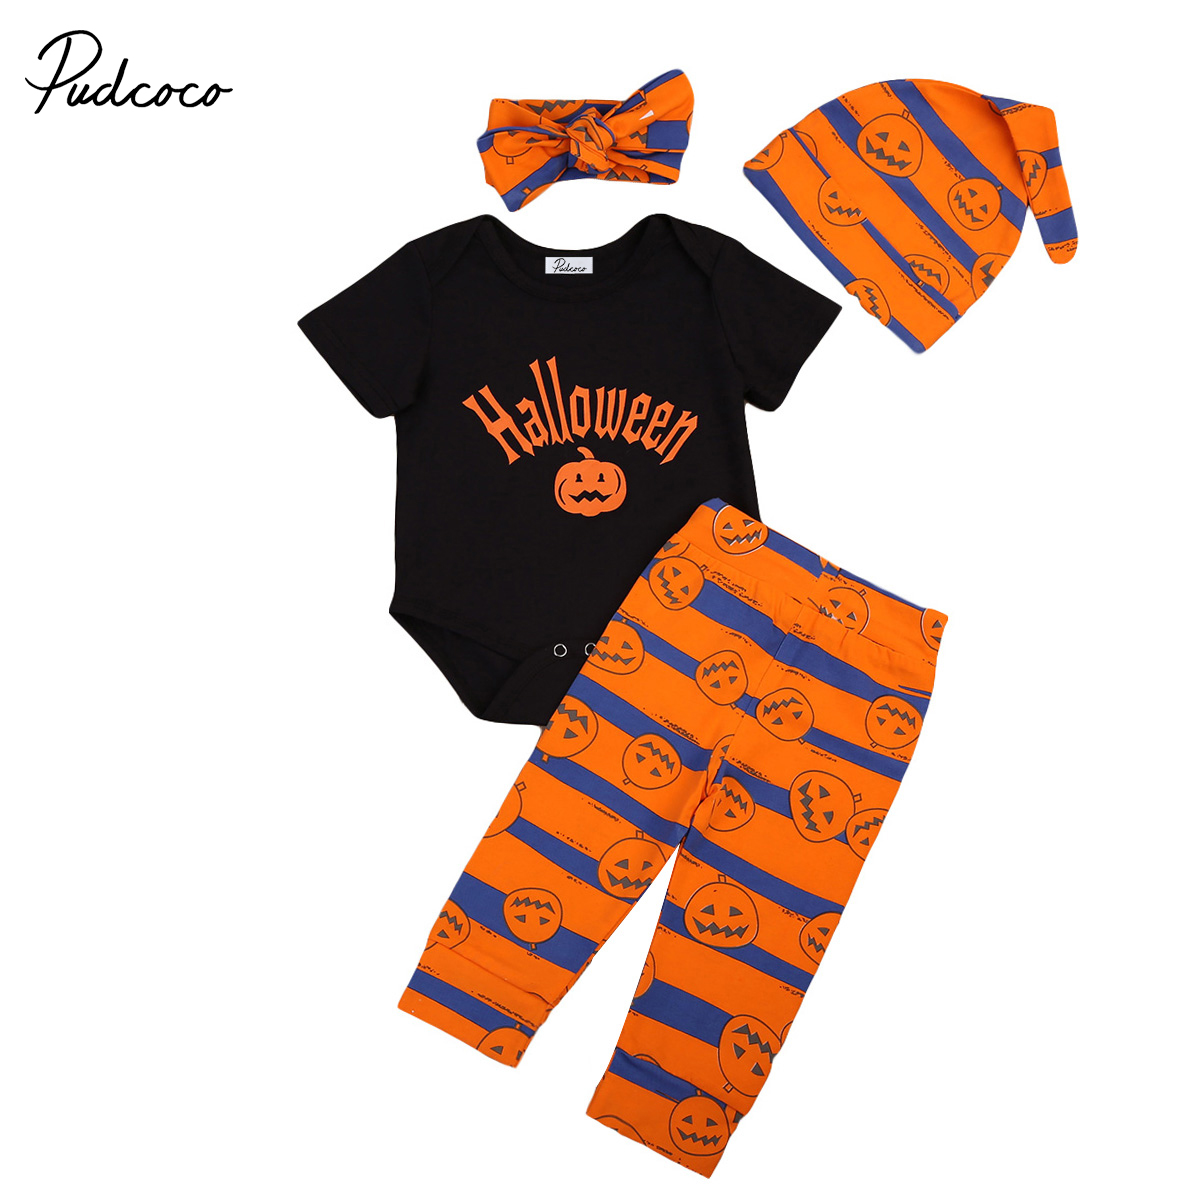 Halloween 4pcs Set Newborn Kids Baby Boy Girl Clothes Set Cotton Tops Romper + Pants Outfits 0-18M